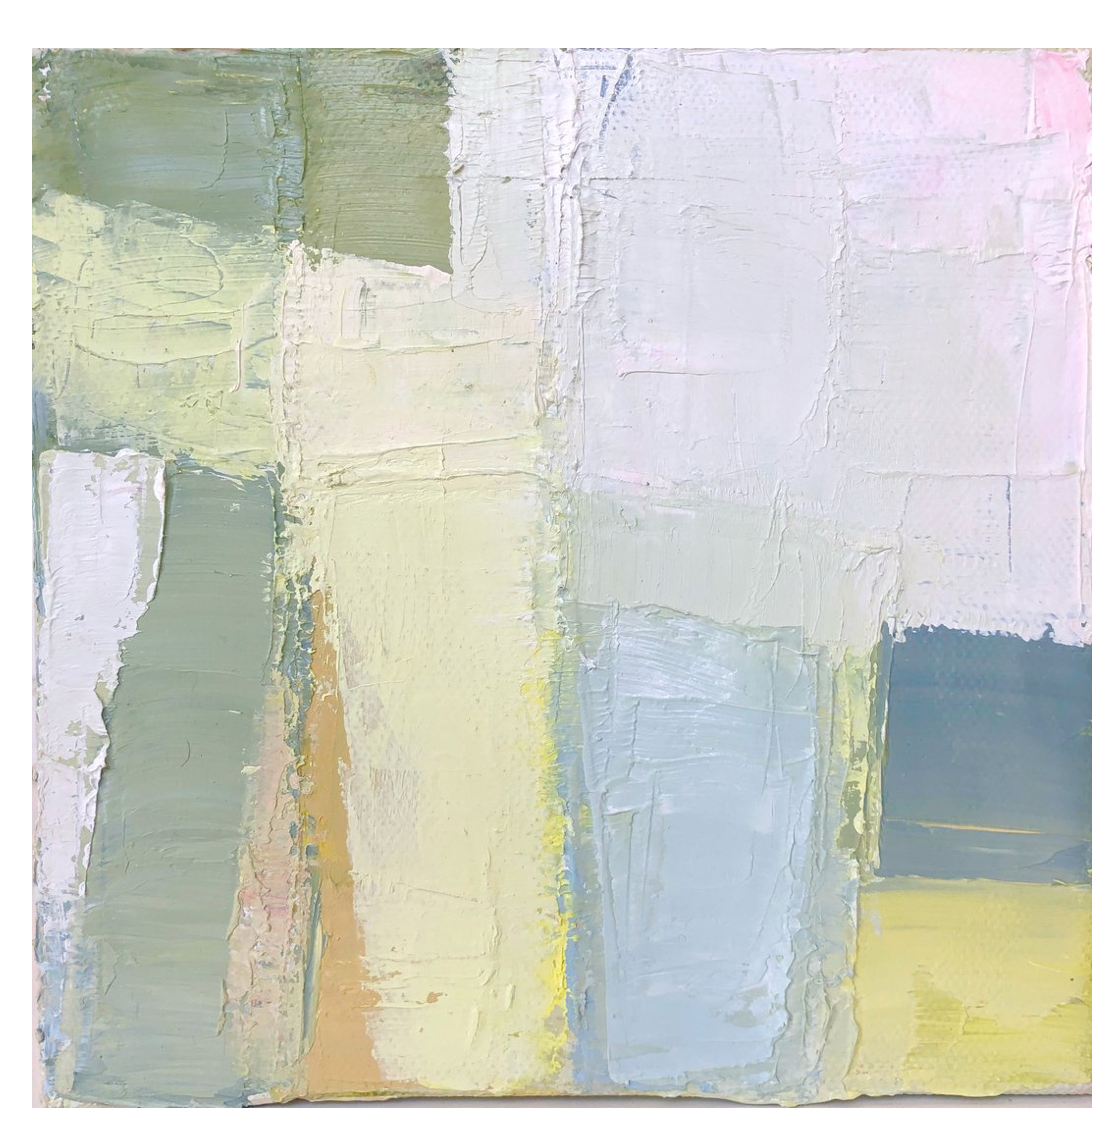 Beach Party V by Lankford Barksdale  is available at The Collective Dallas